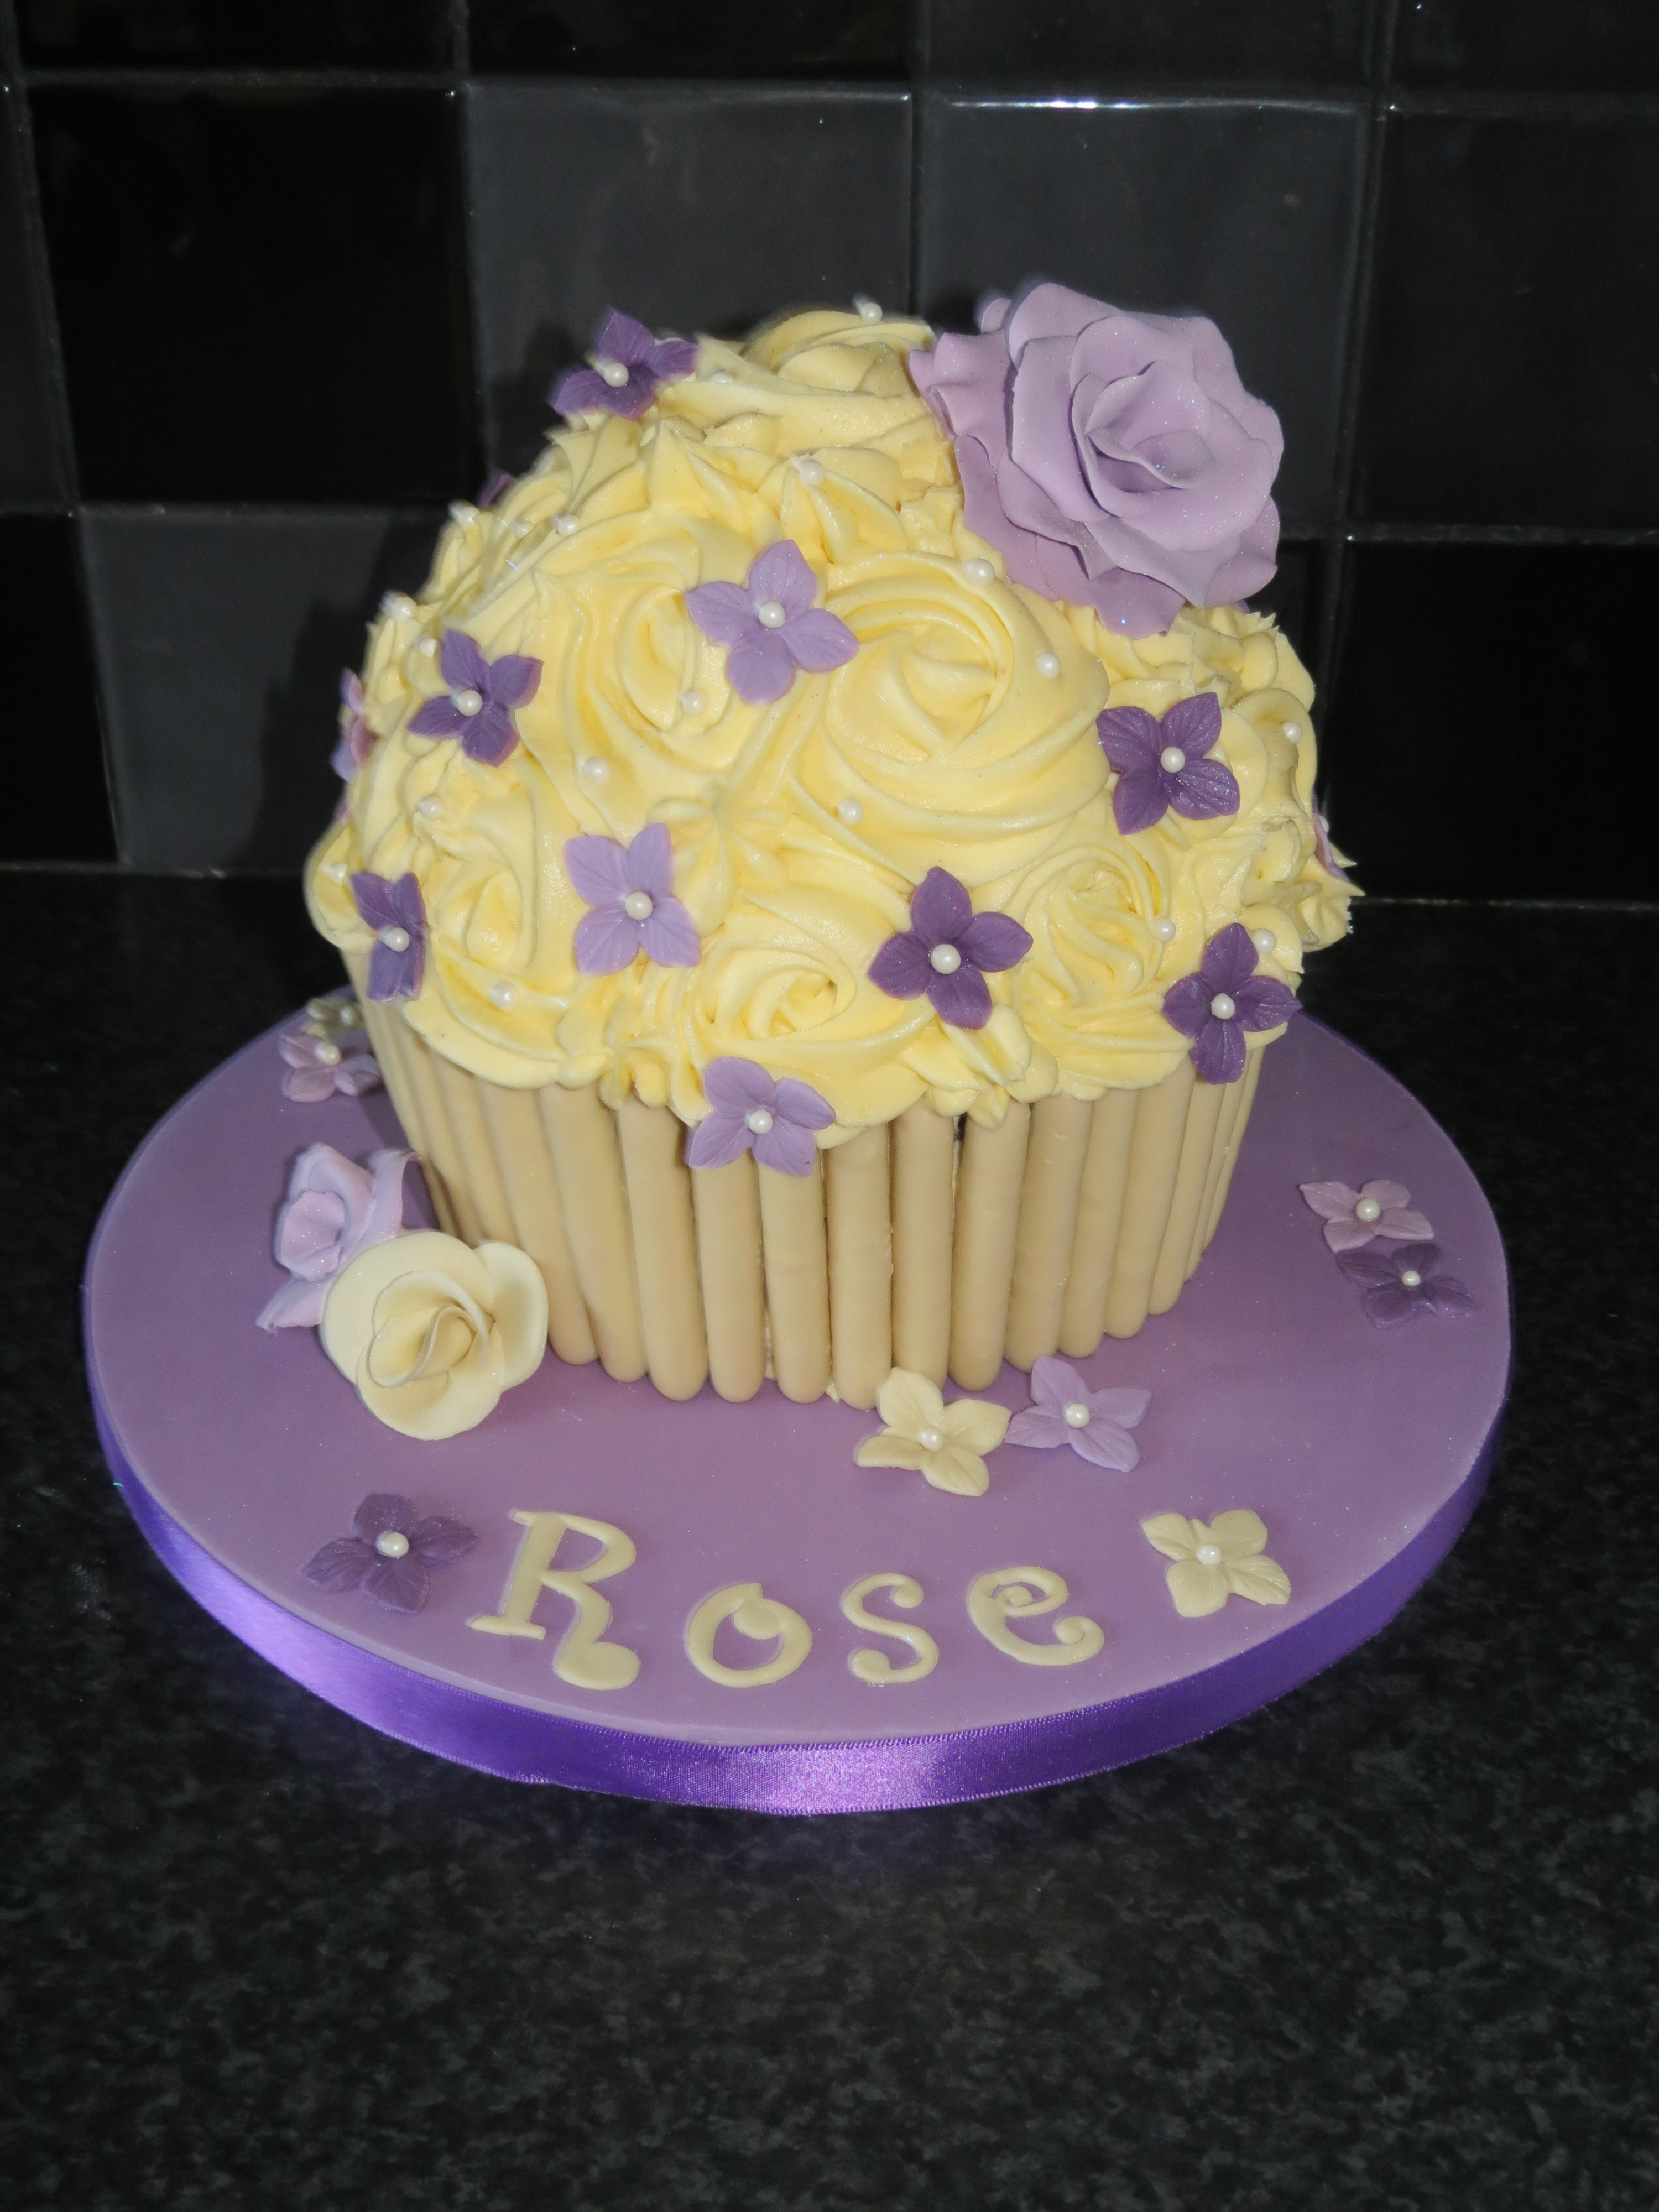 Giant Cupcakes Hartlepool - Truly Scrumptious Cakes